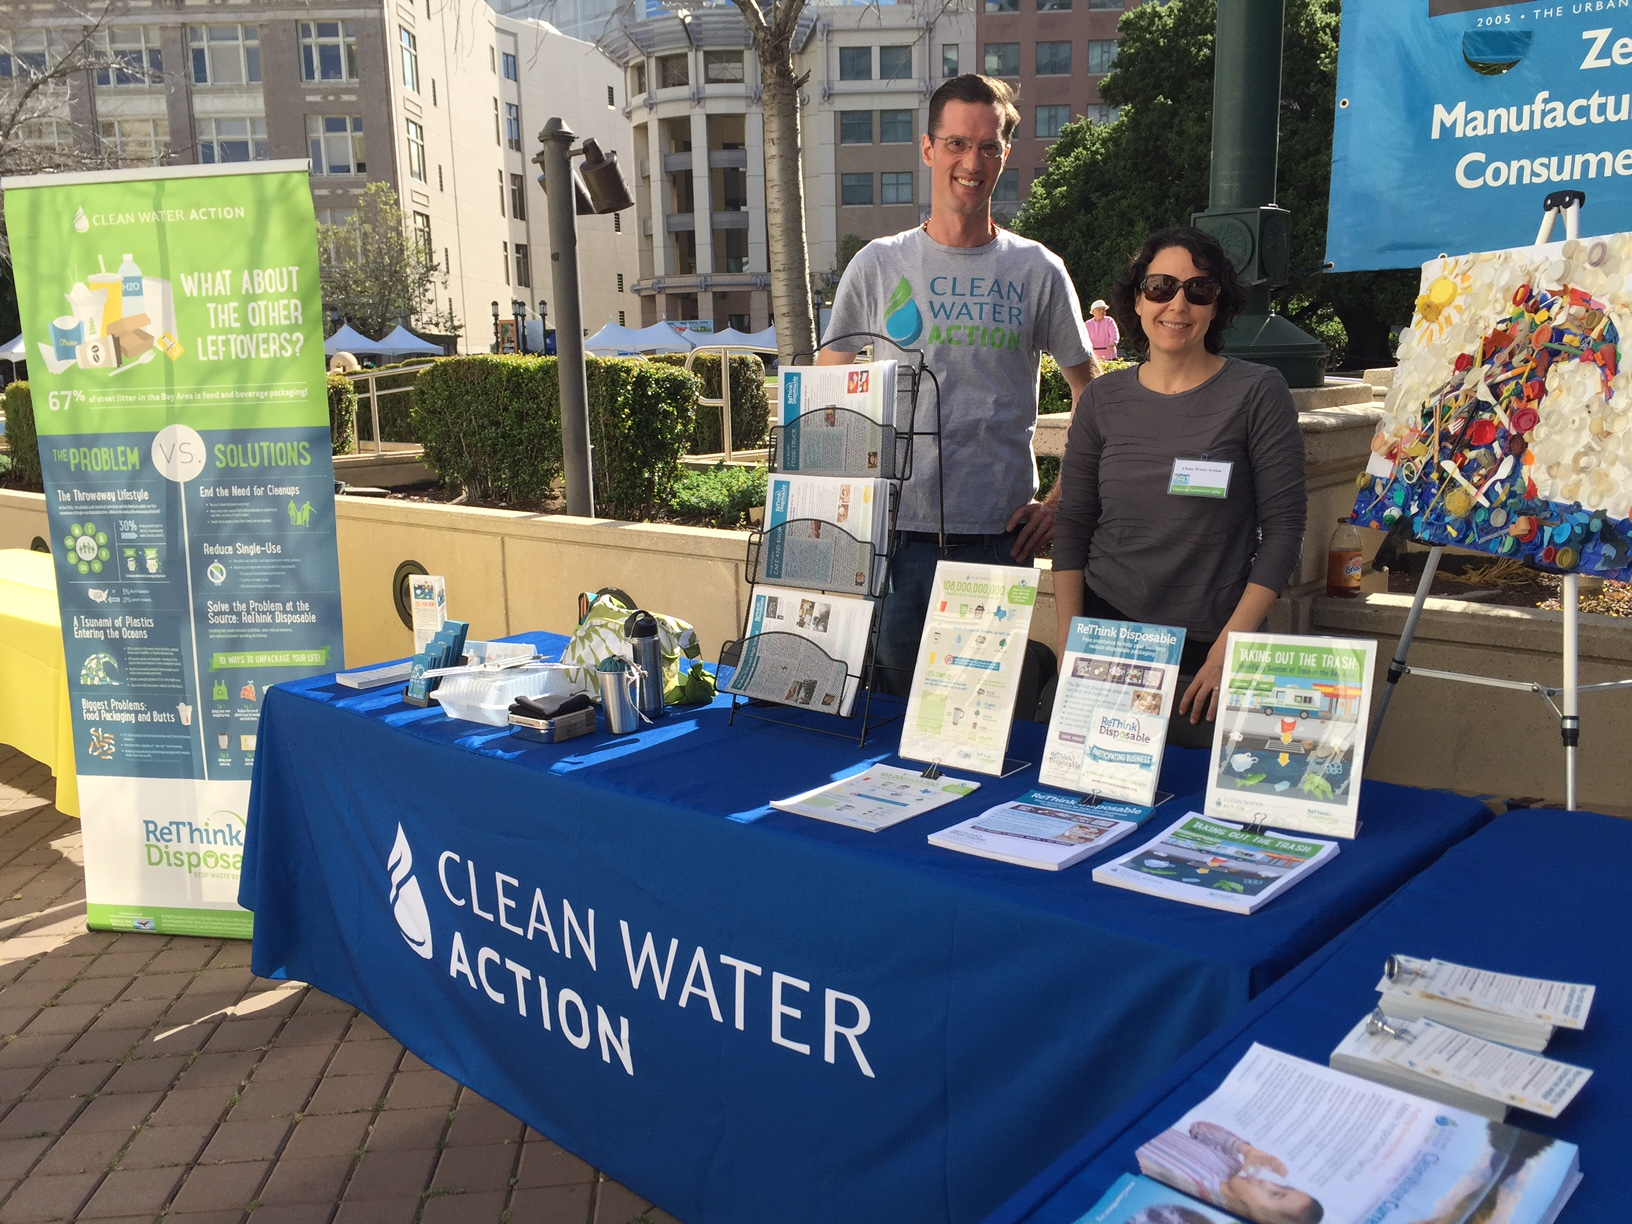 The author (left) and Waste Prevention Program Associate Dara Rossoff Powell (right), tabling on Wednesday, April 6 at the City of Oakland's Earth Expo event, downtown.